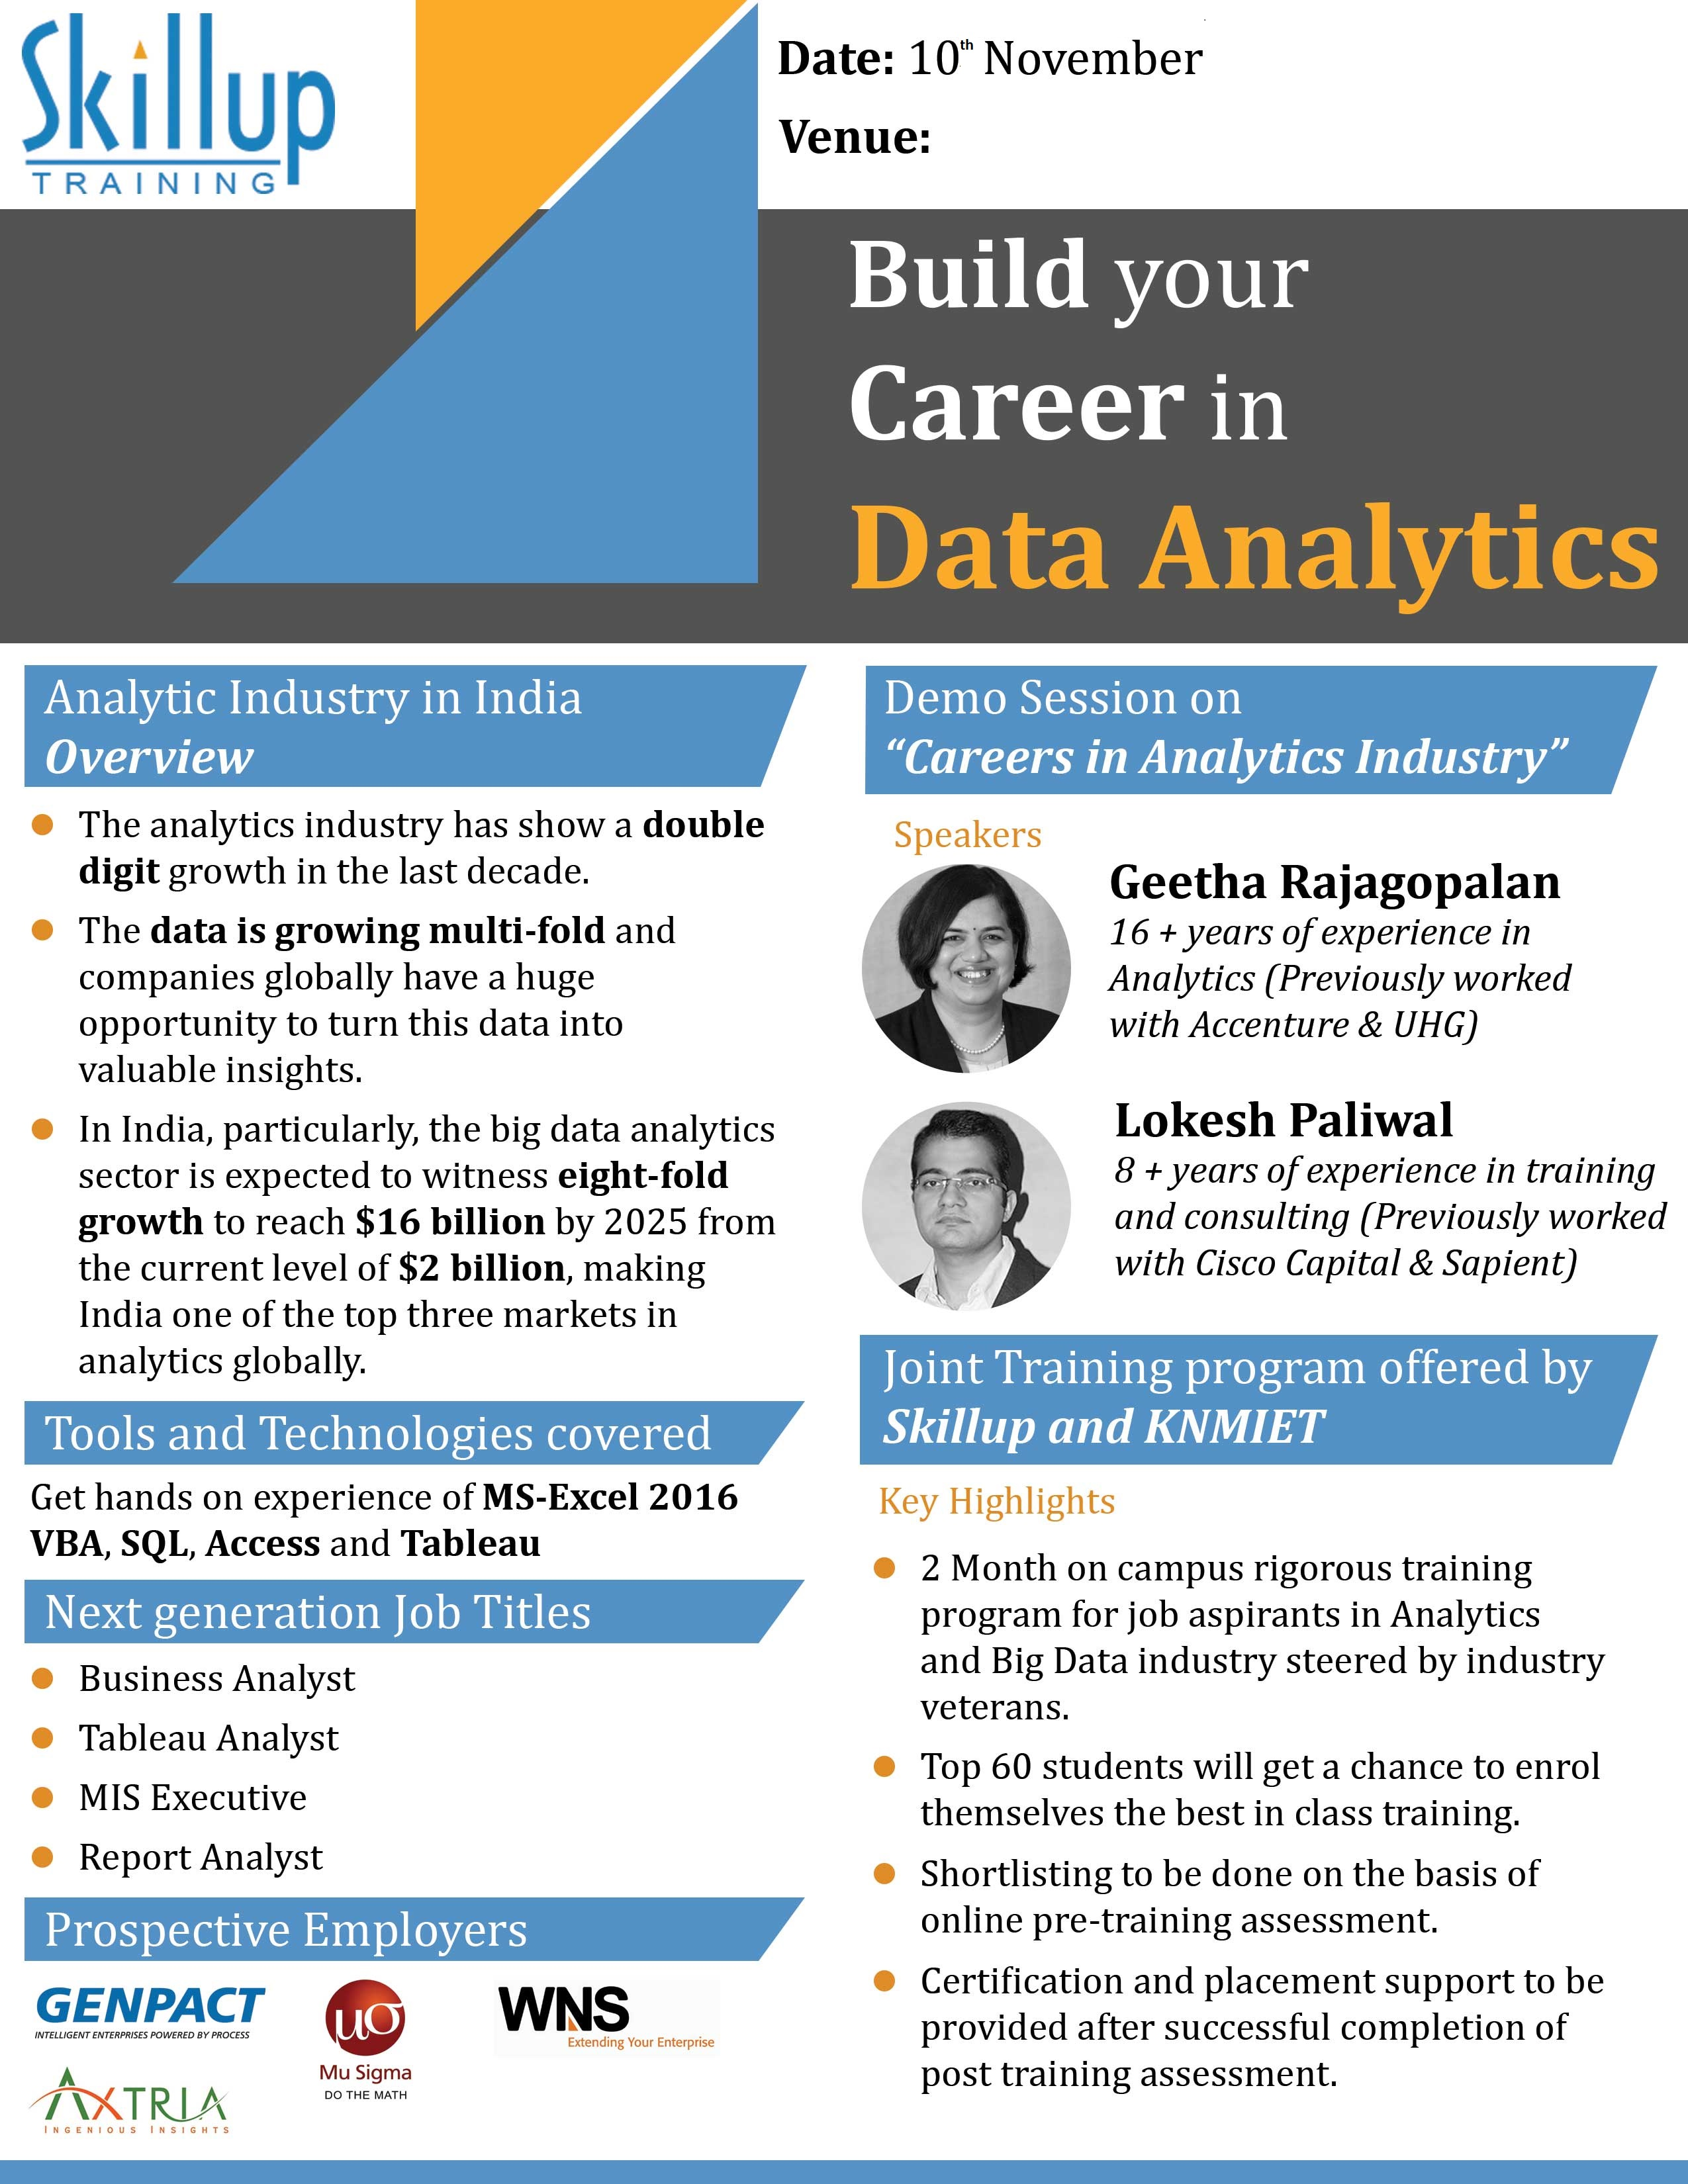 Build your career in Data Analytics